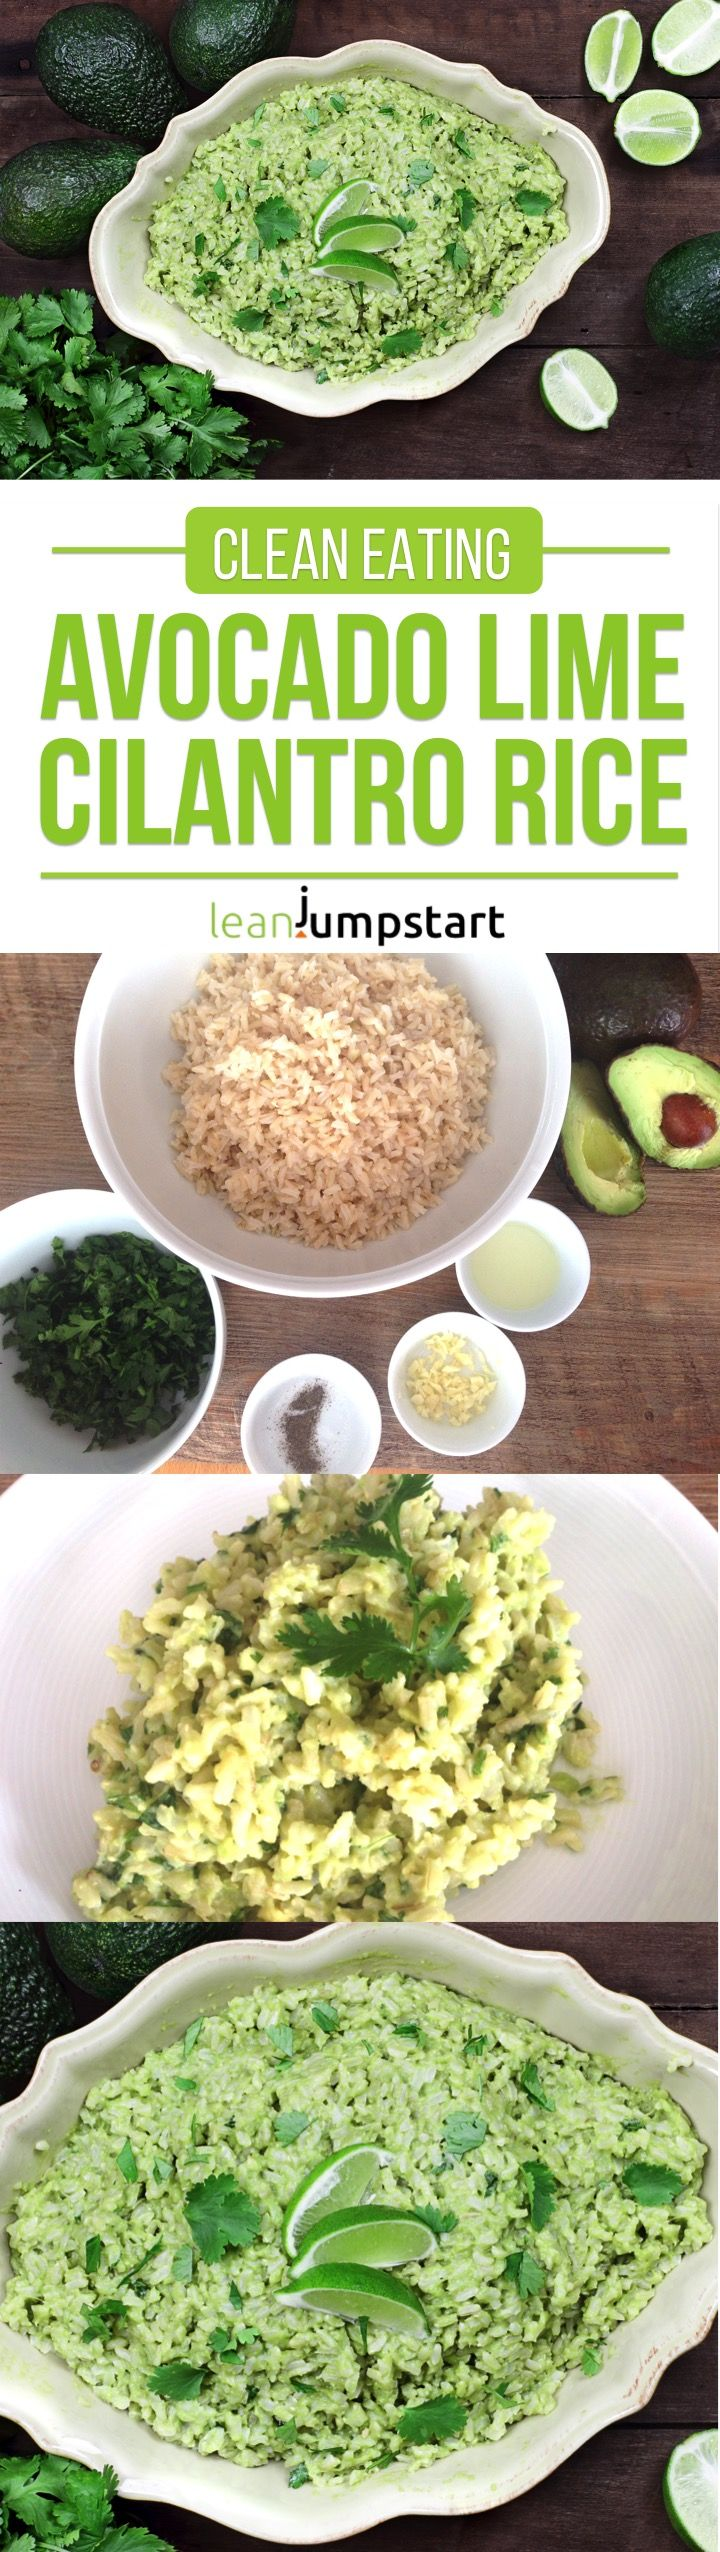 Cilantro Lime Rice With Avocado – a quick and easy clean eating dish